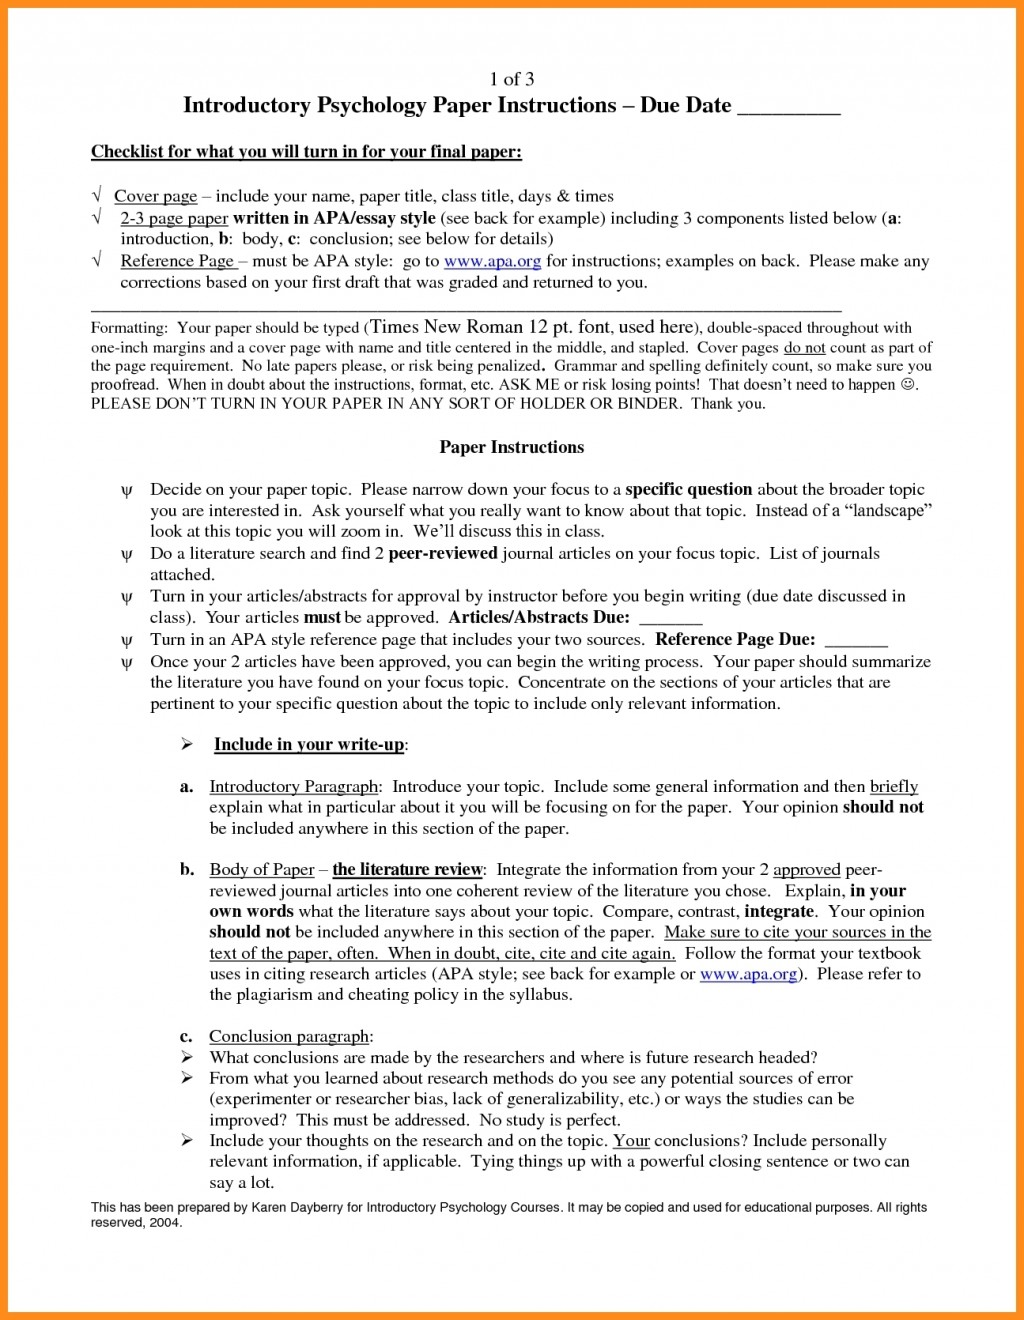 019 Research Paper Conclusion Paragraph Format Examples For Papers And Forms Top Large